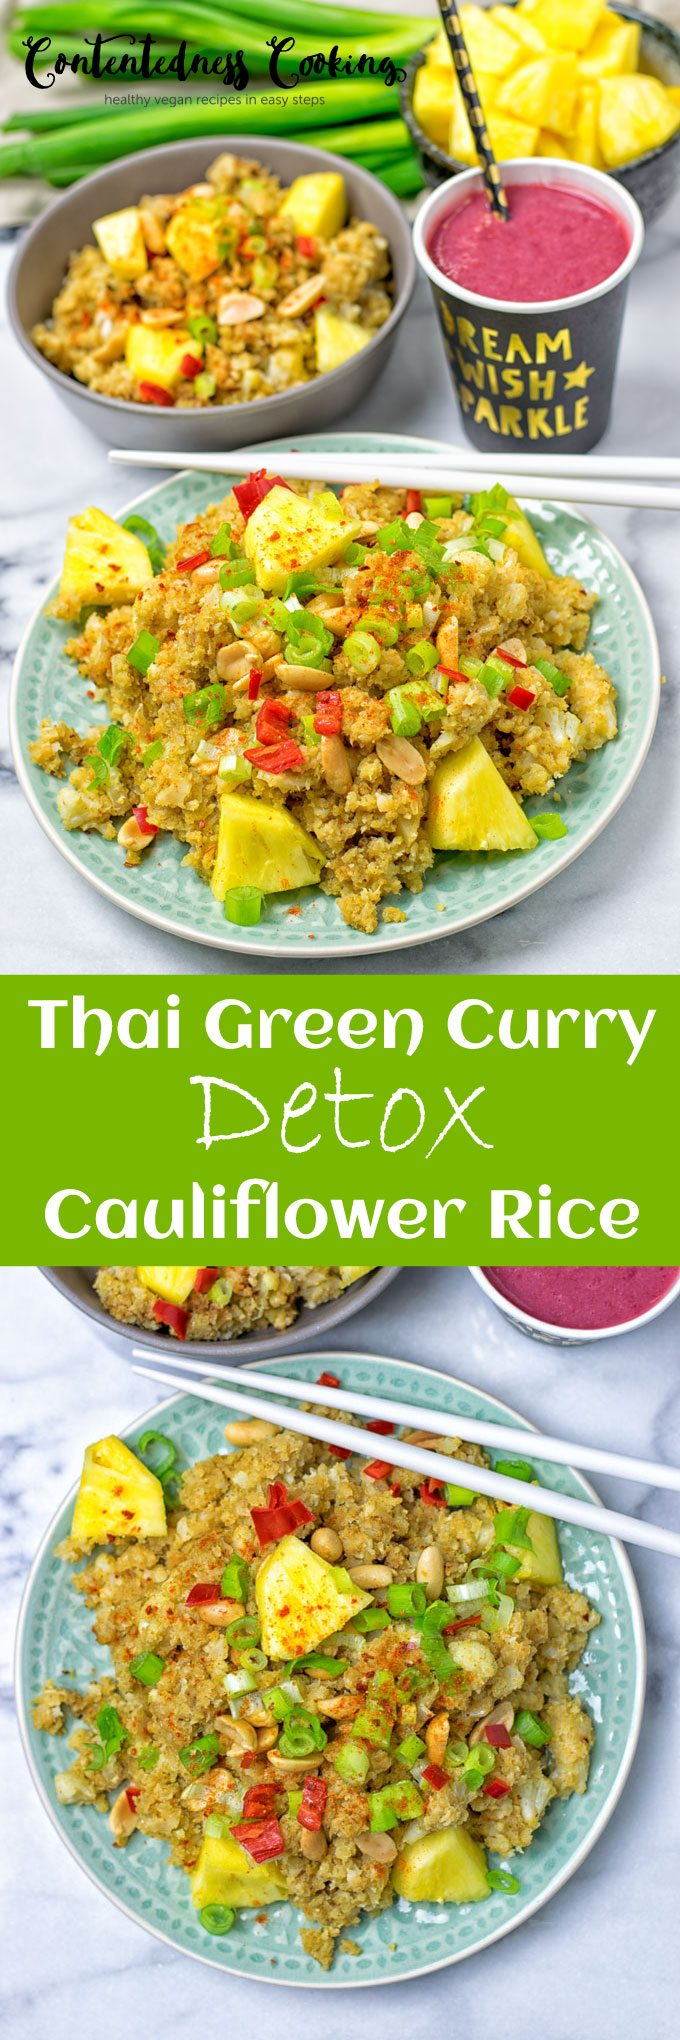 Collage of two pictures of the Thai Green Curry Detox Cauliflower Rice with recipe title text.